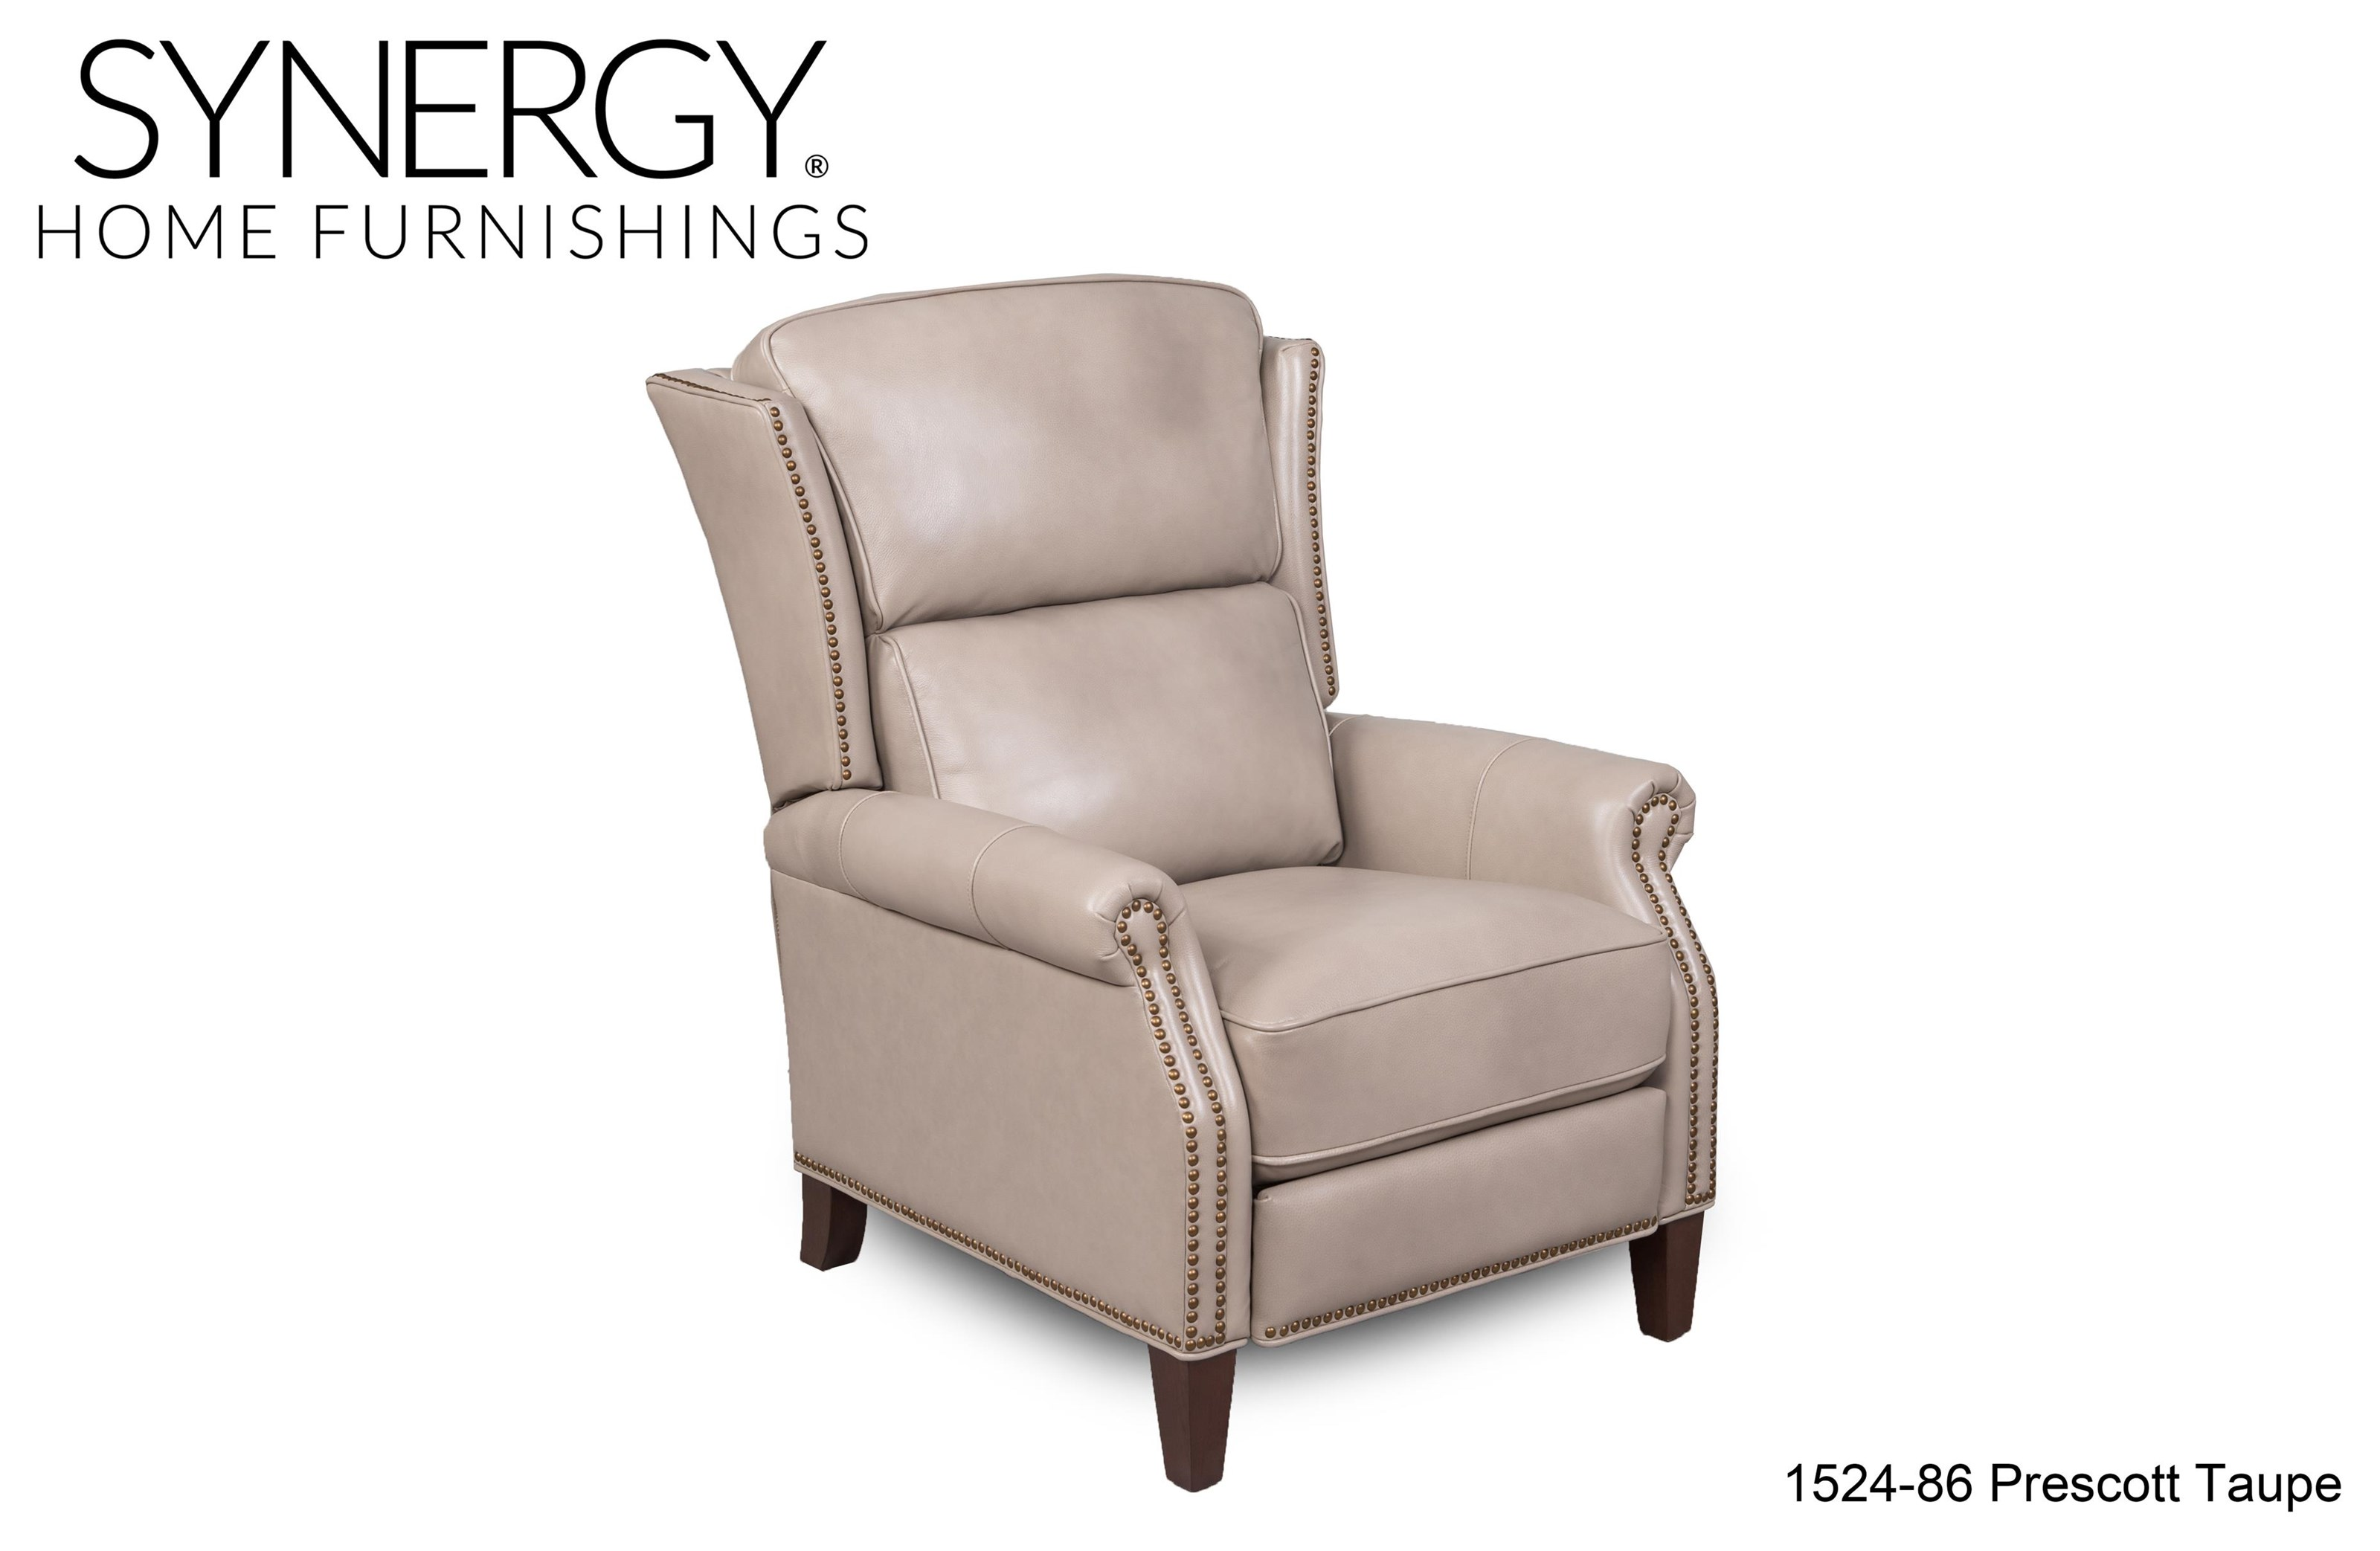 1524 Recliner/prescott Taupe Lv by Synergy Home Furnishings at Stoney Creek Furniture